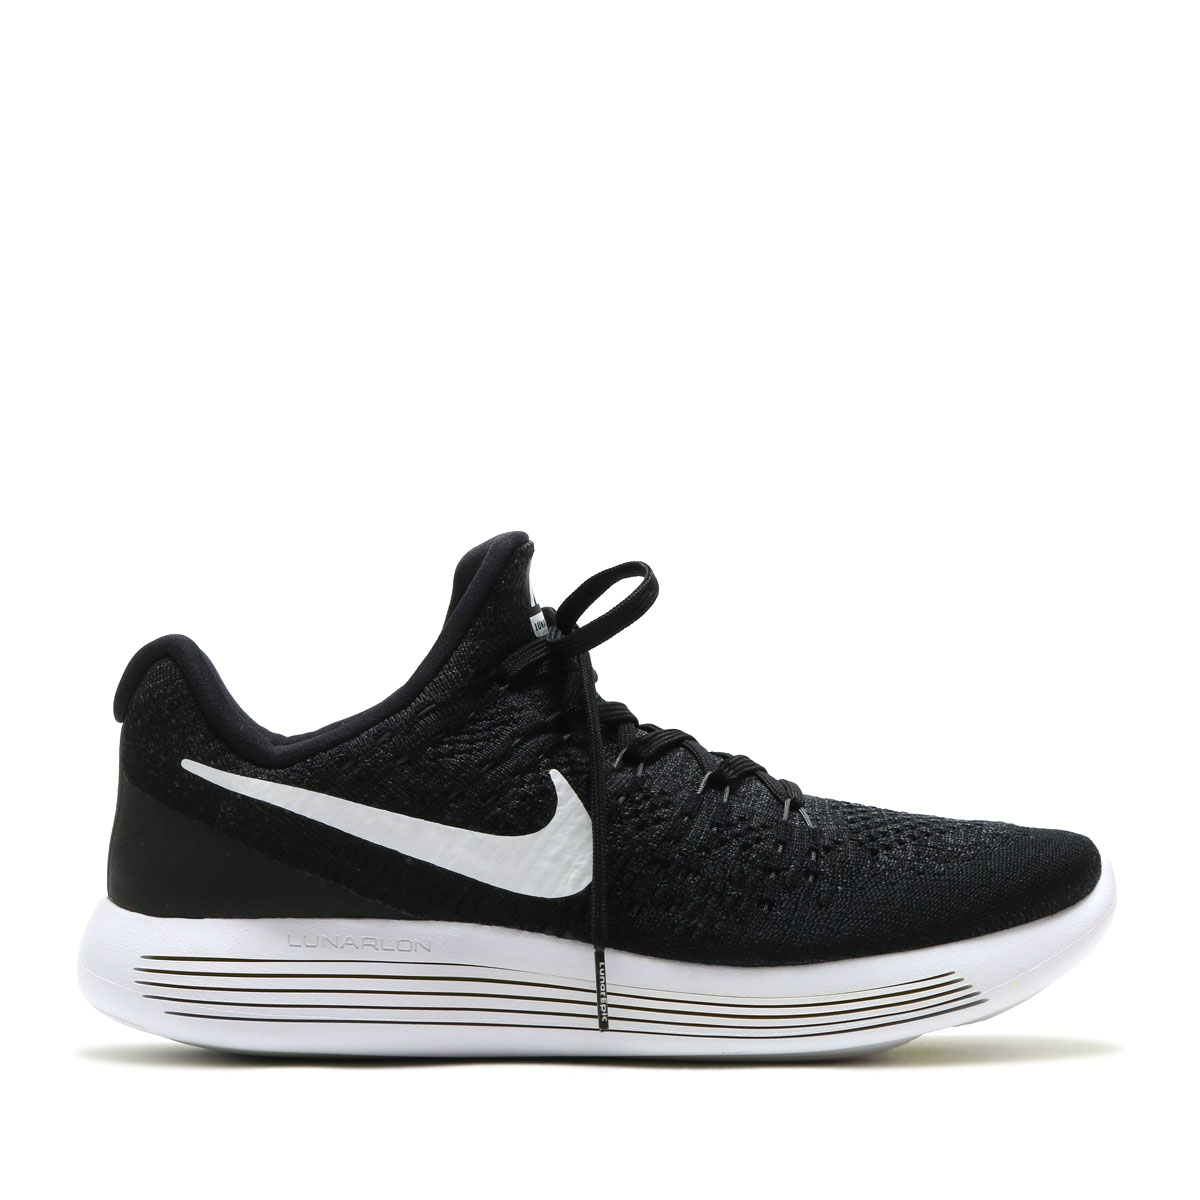 NIKE LUNAREPIC LOW FLYKNIT 2 (나이키 루나 서사시 로 플라이 니트 2) (BLACK/WHITE-ANTHRACITE) 17 SP-S